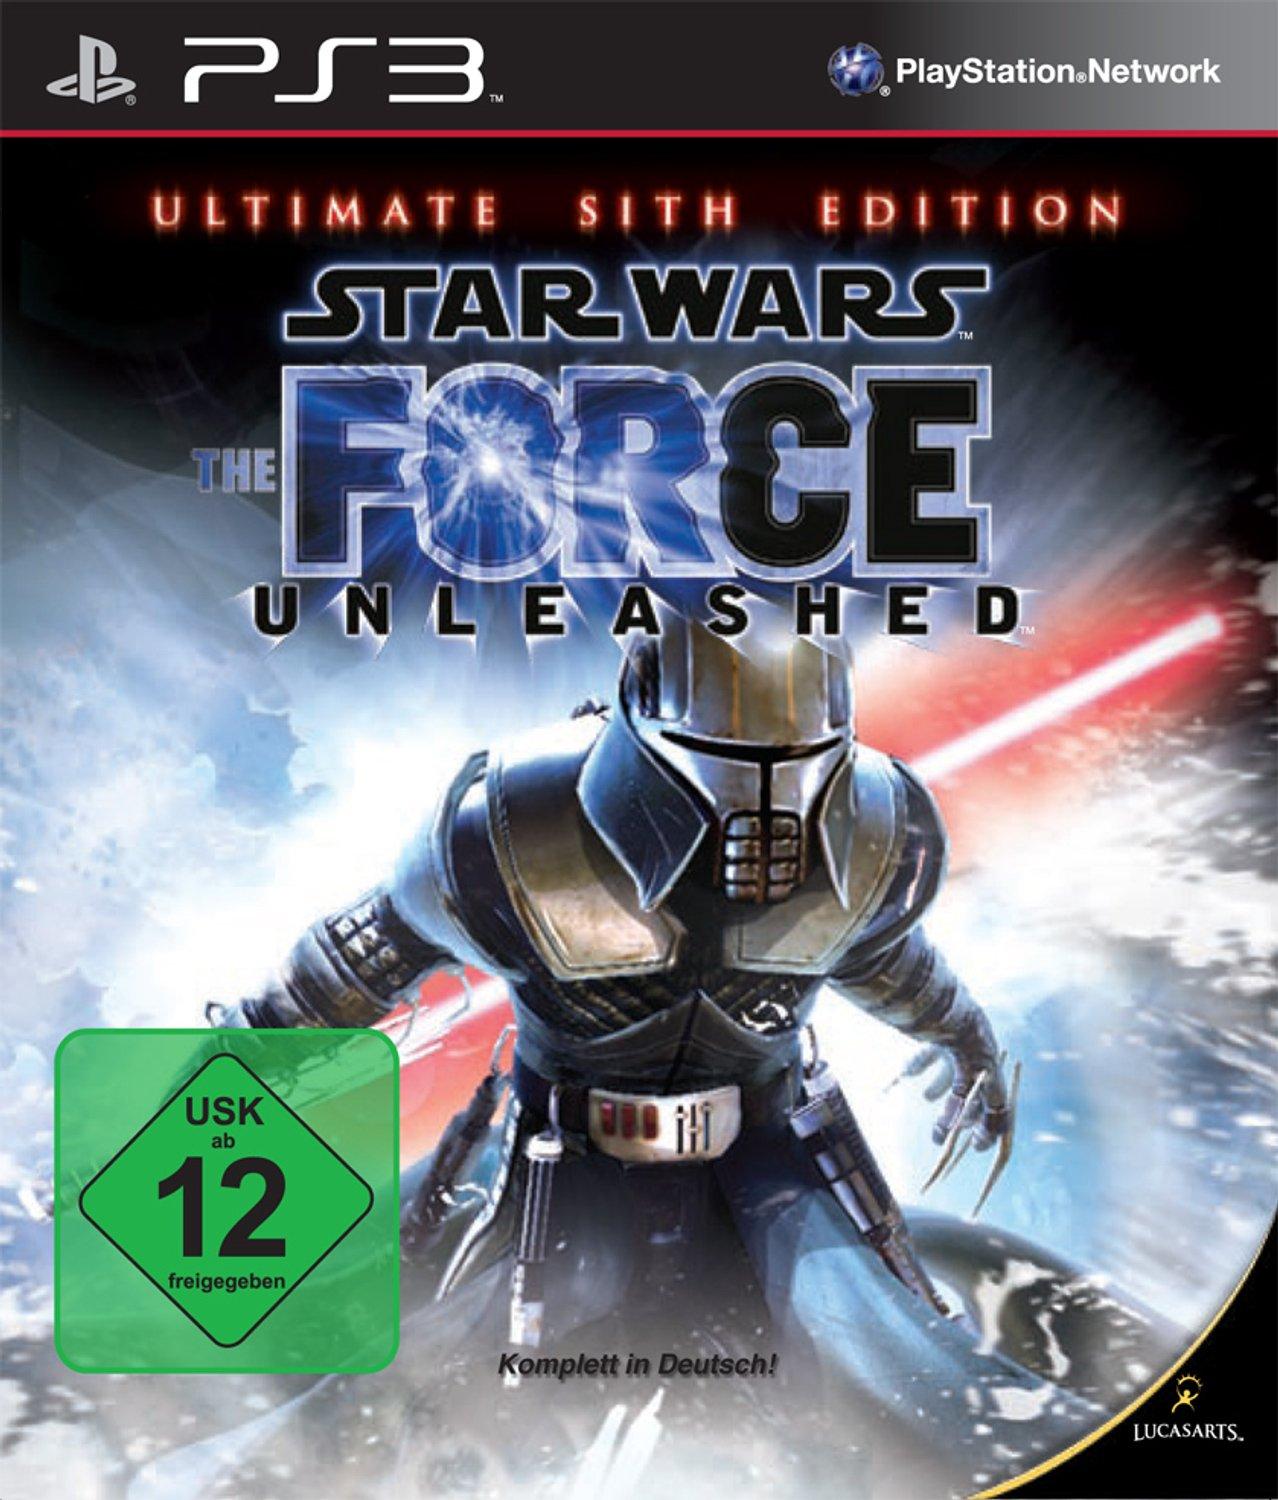 Star Wars - The Force Unleashed (Ultimate Sith Edition)